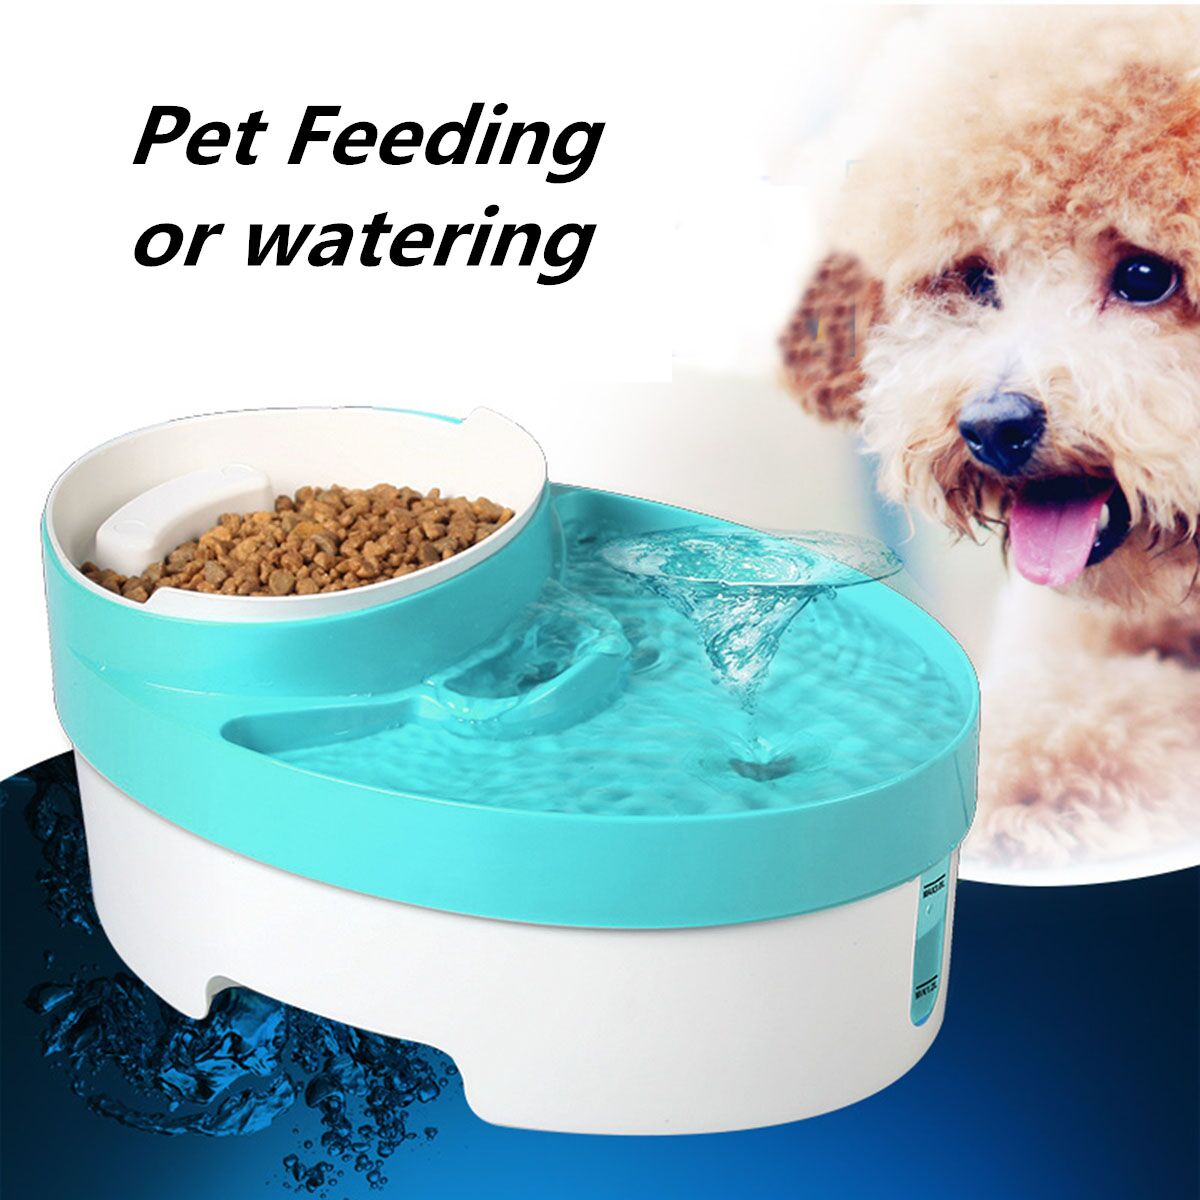 ABS 3 in 1 Automatic Pet Feeder Water Fountain Drinker Puppy Dog Food Bowl Dish Dispenser Portable Pet Feeding Tools Accessories(China (Mainland))